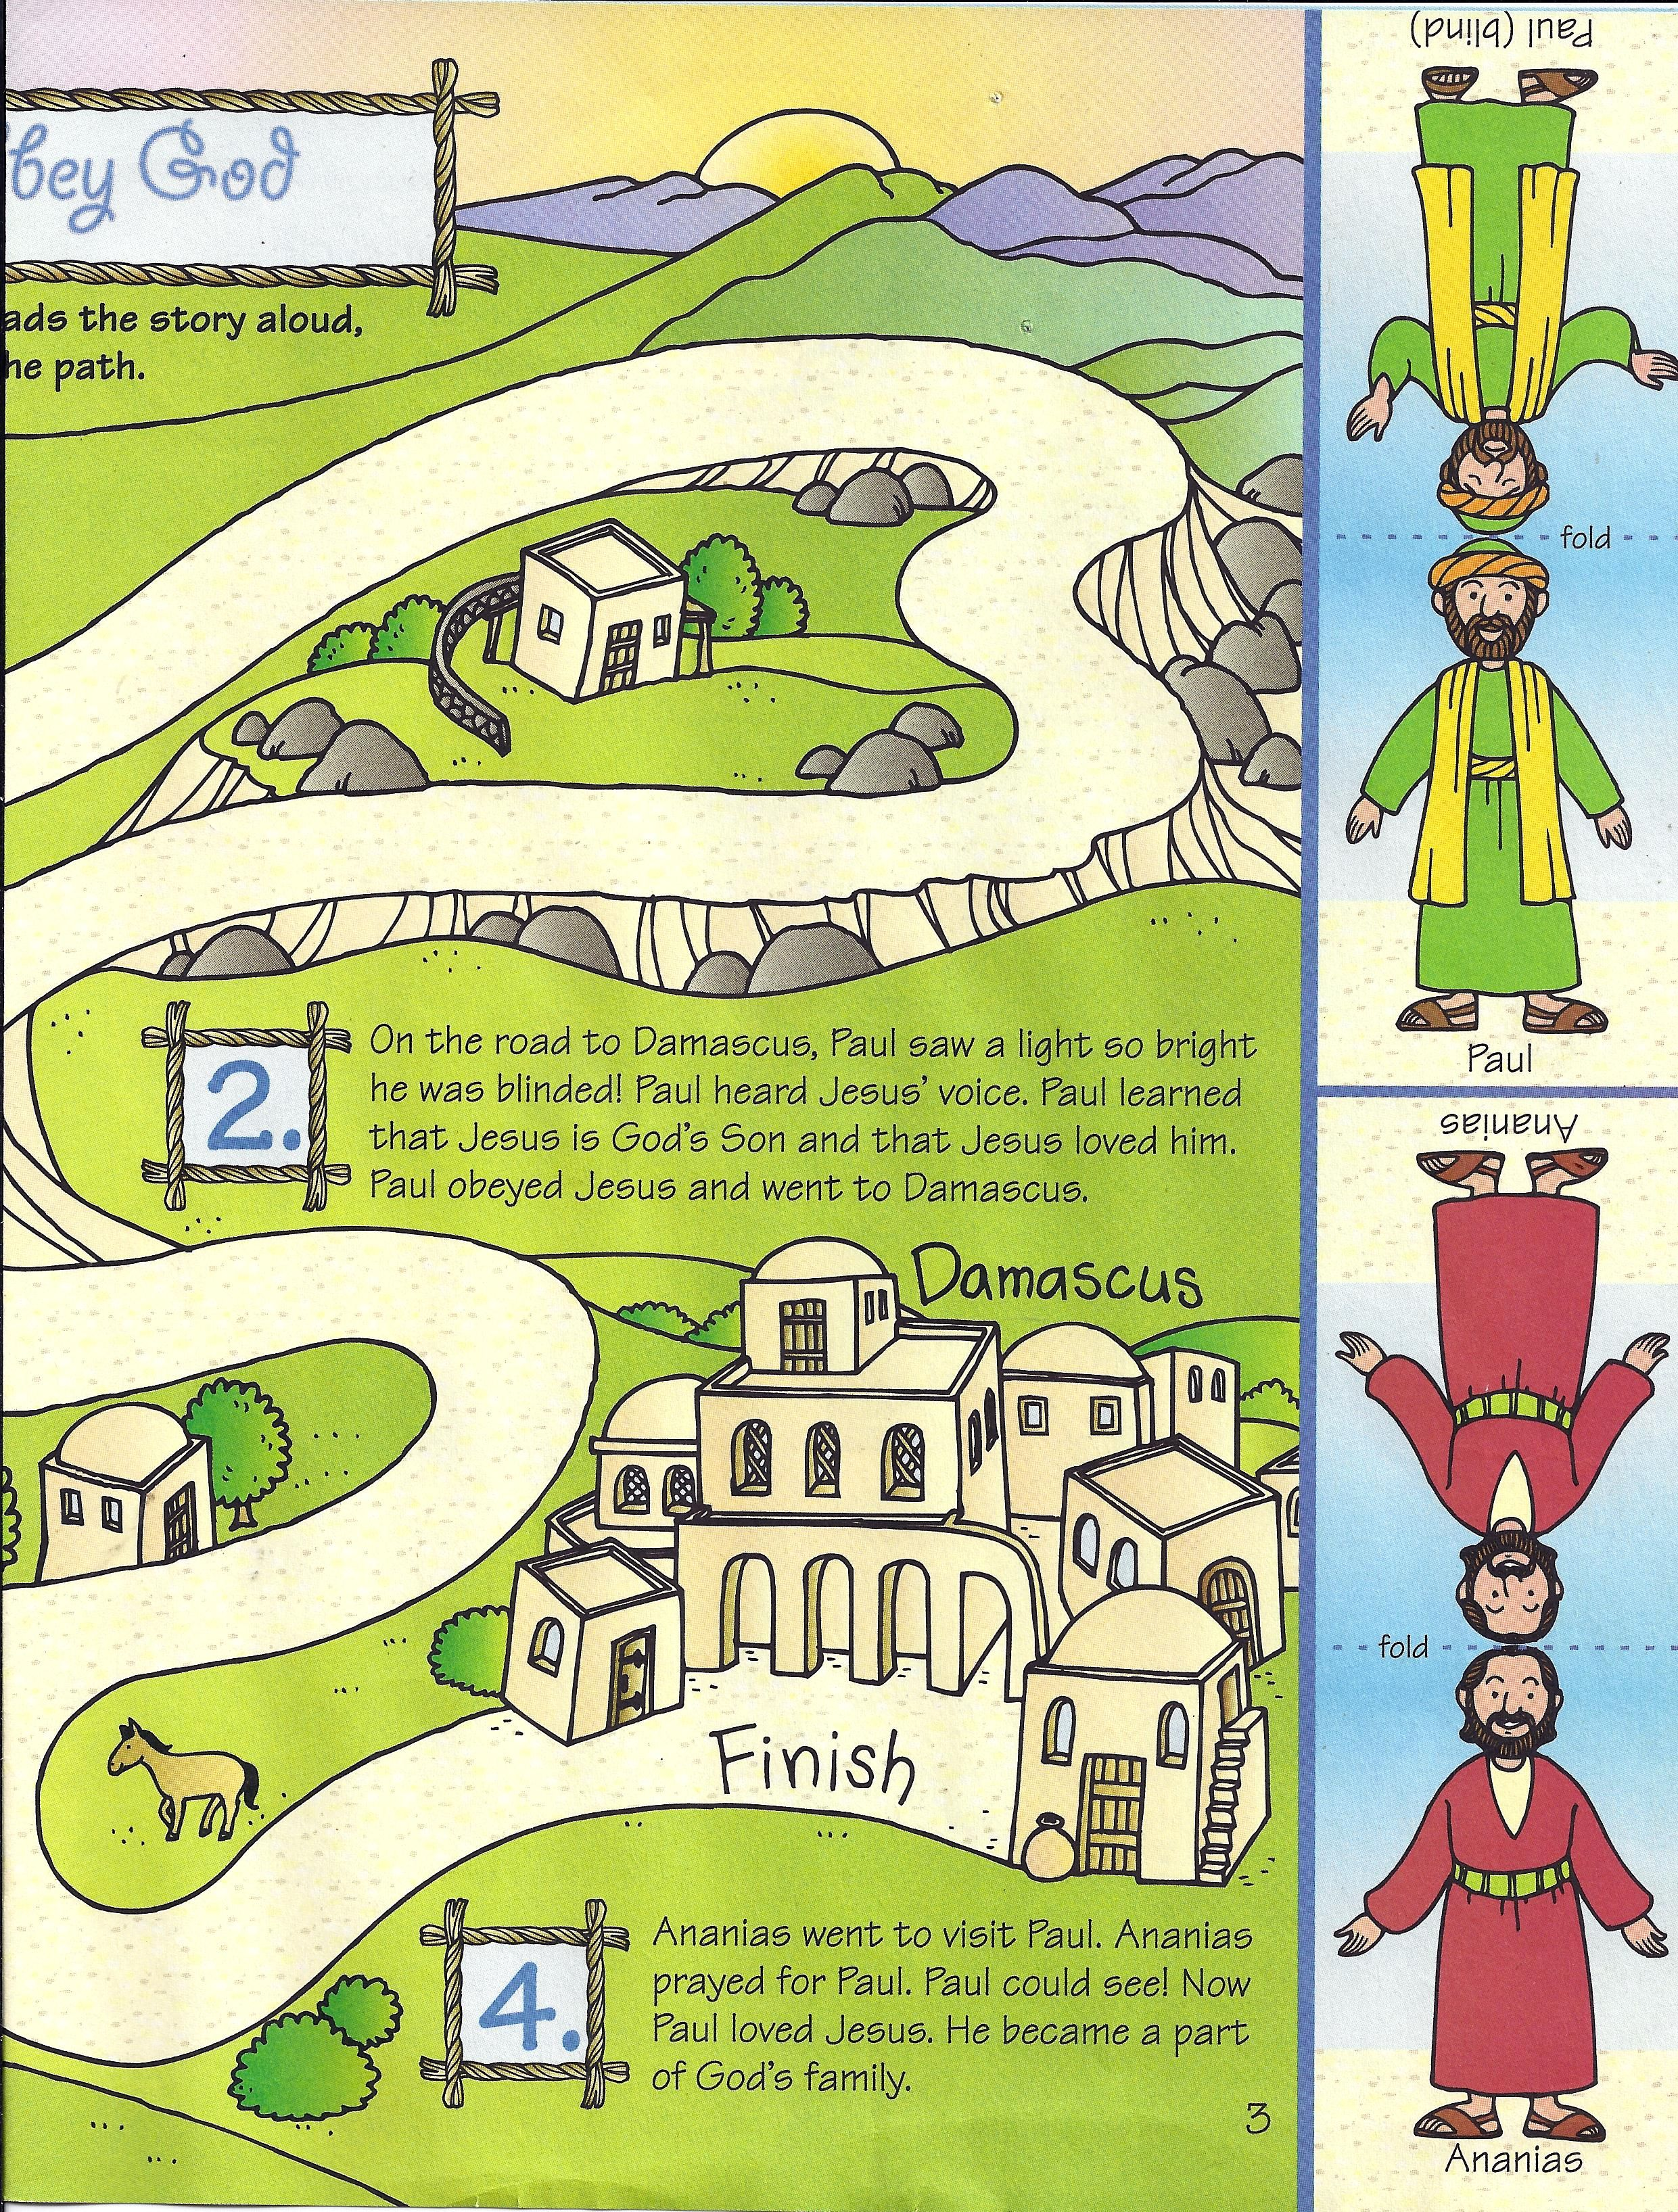 Childrens coloring sheet of saul and ananias - Paul And Ananias